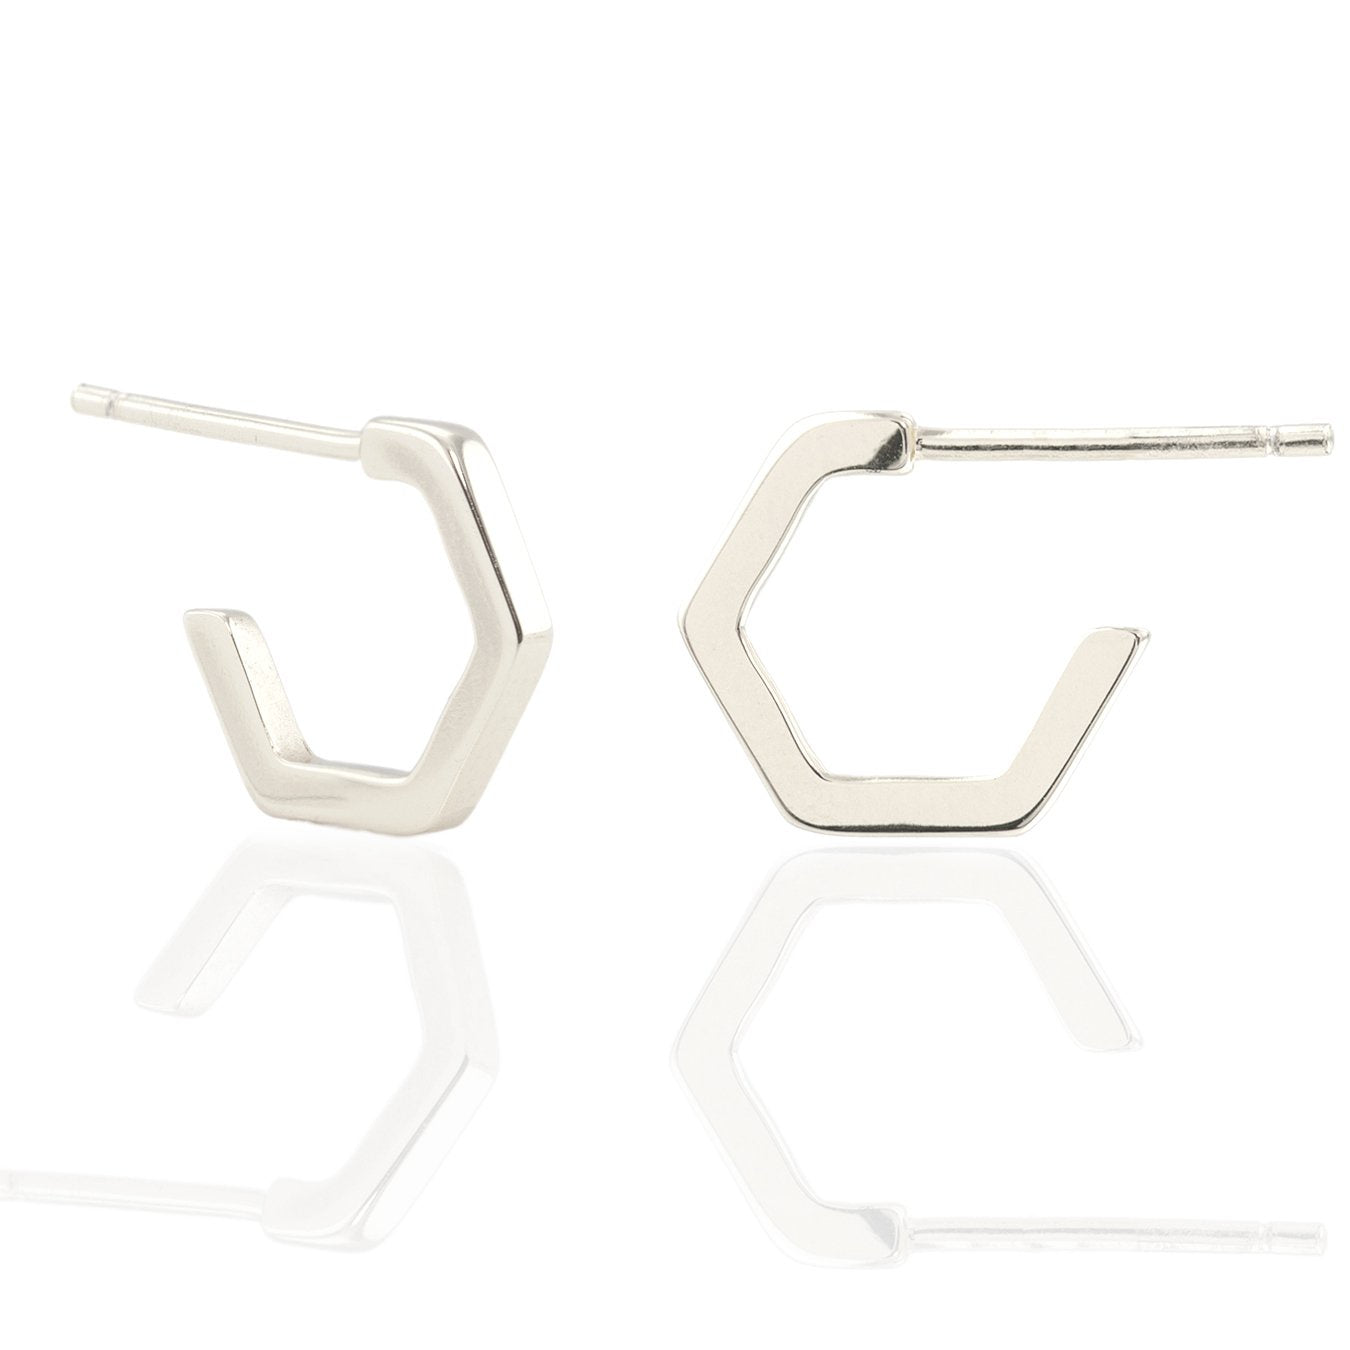 KRIS NATIONS - HEXAGON HUGGIE HOOP EARRINGS IN SILVER